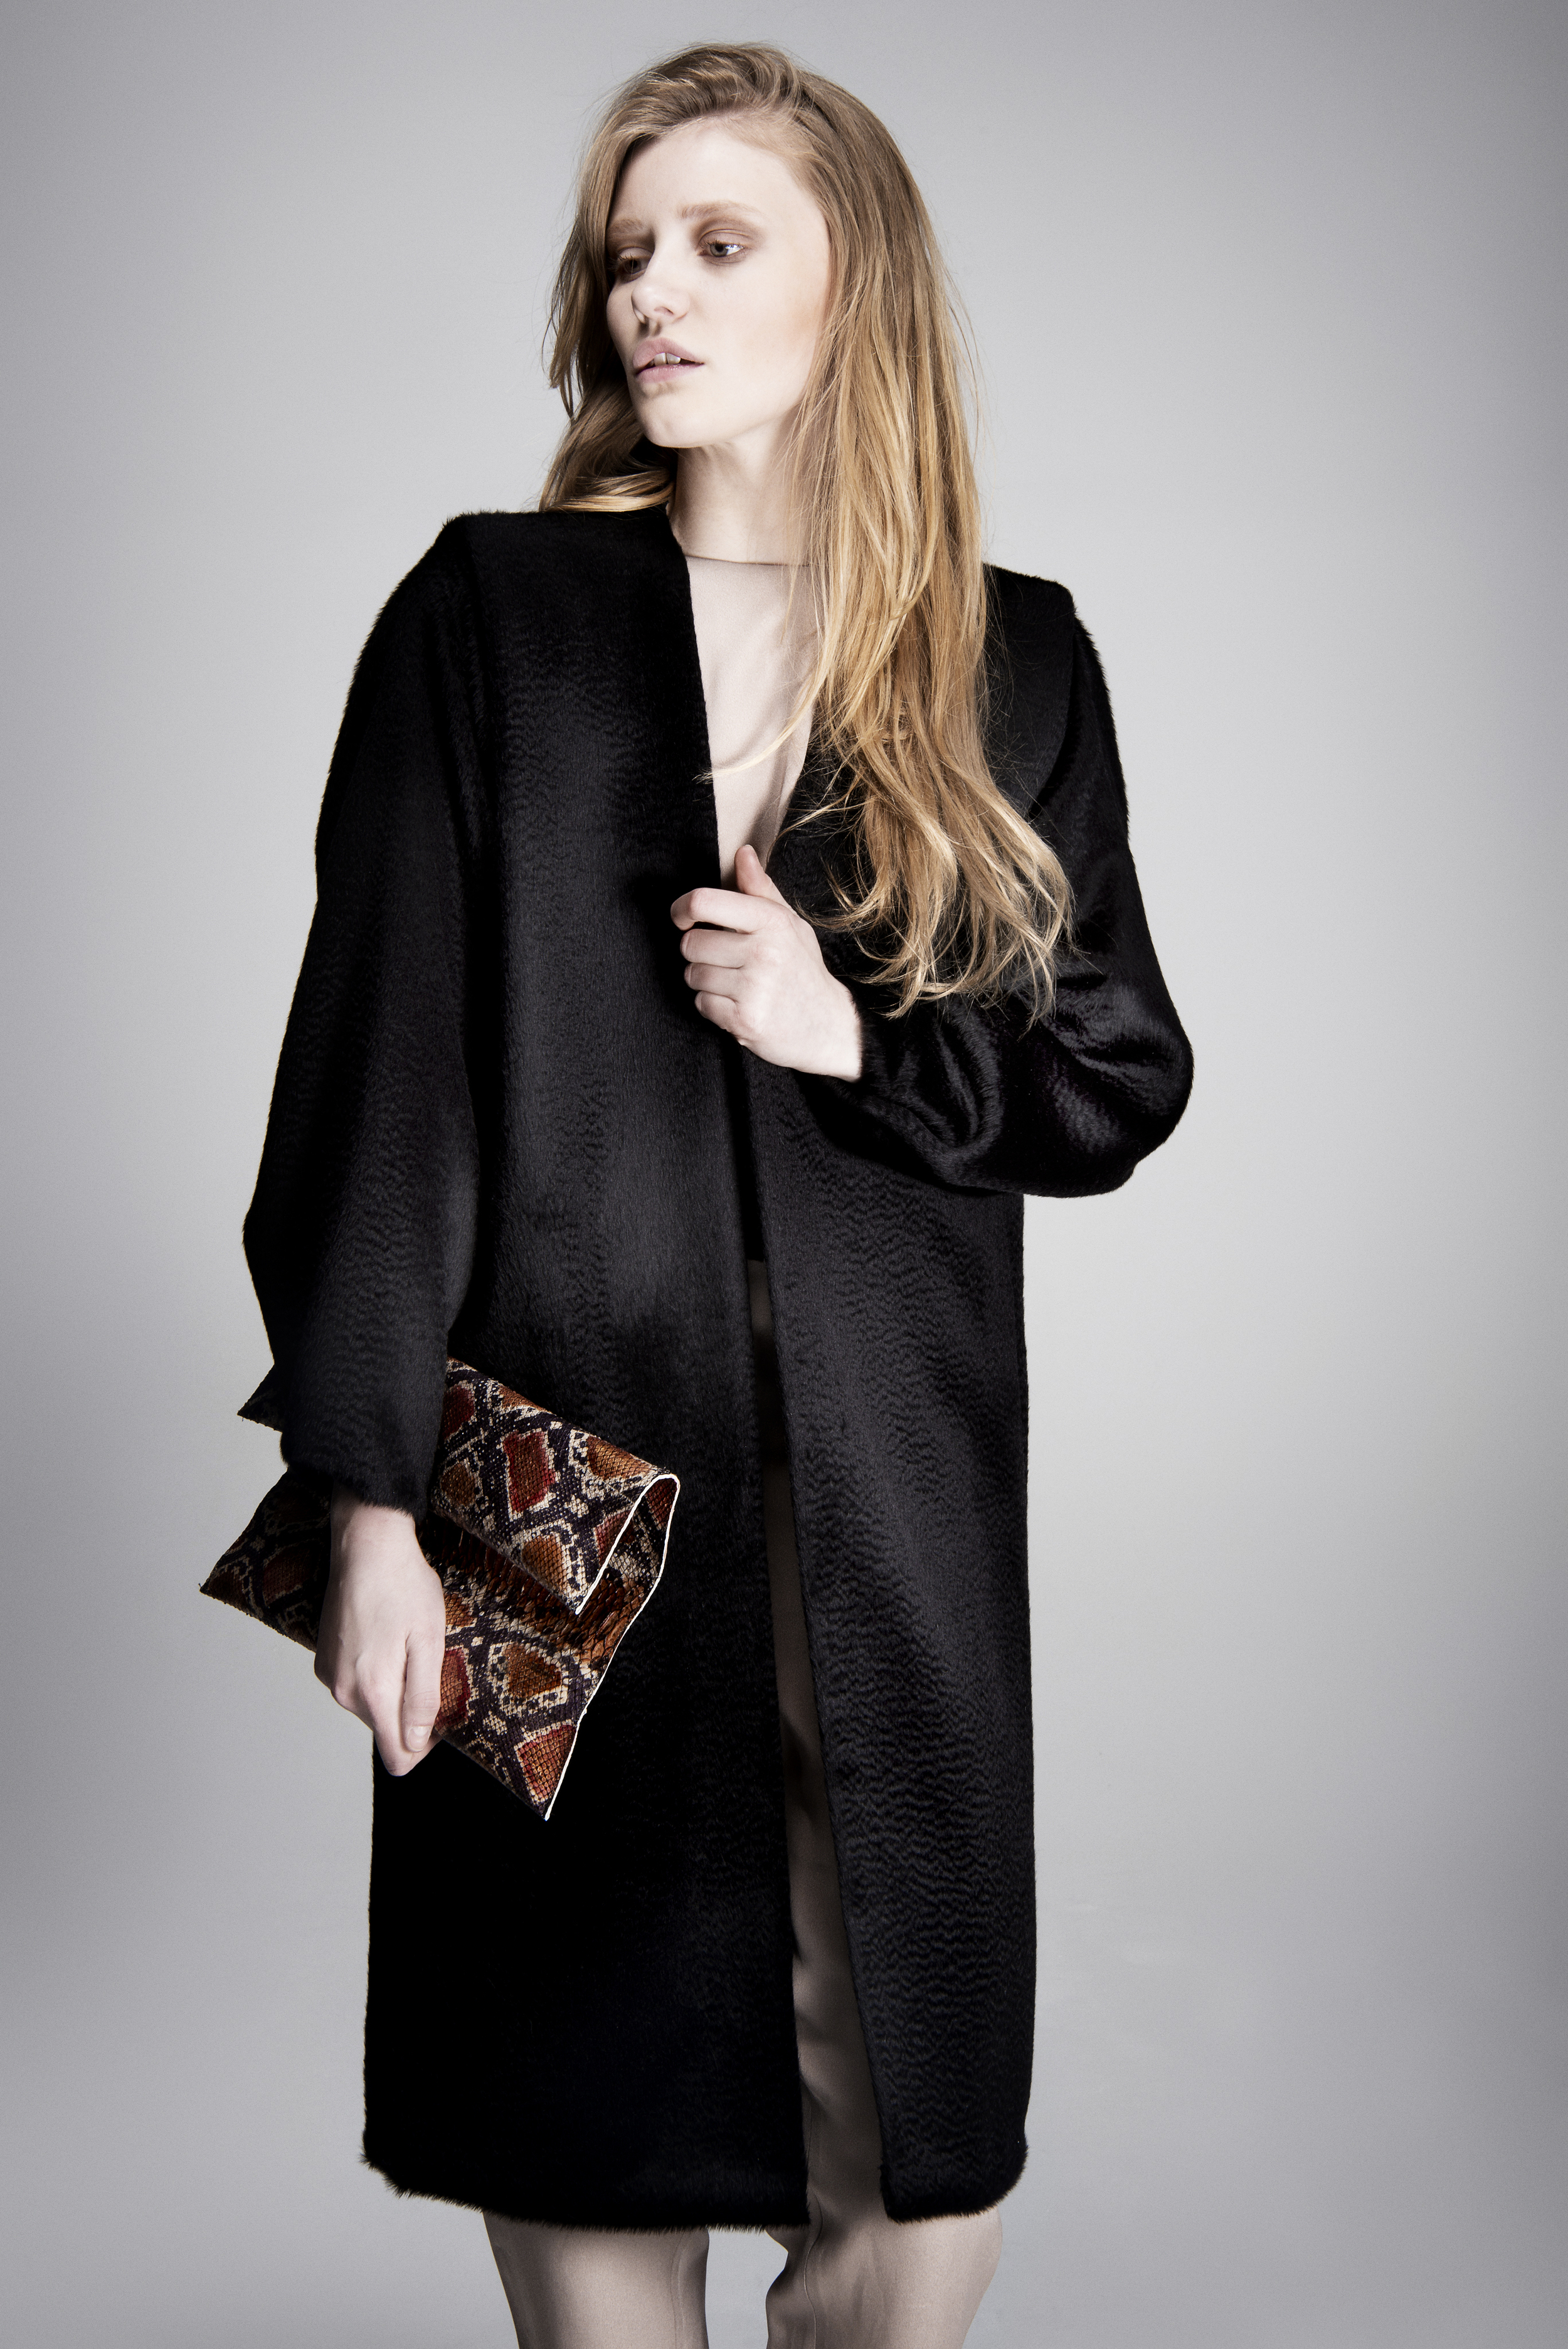 AW13 Look Book